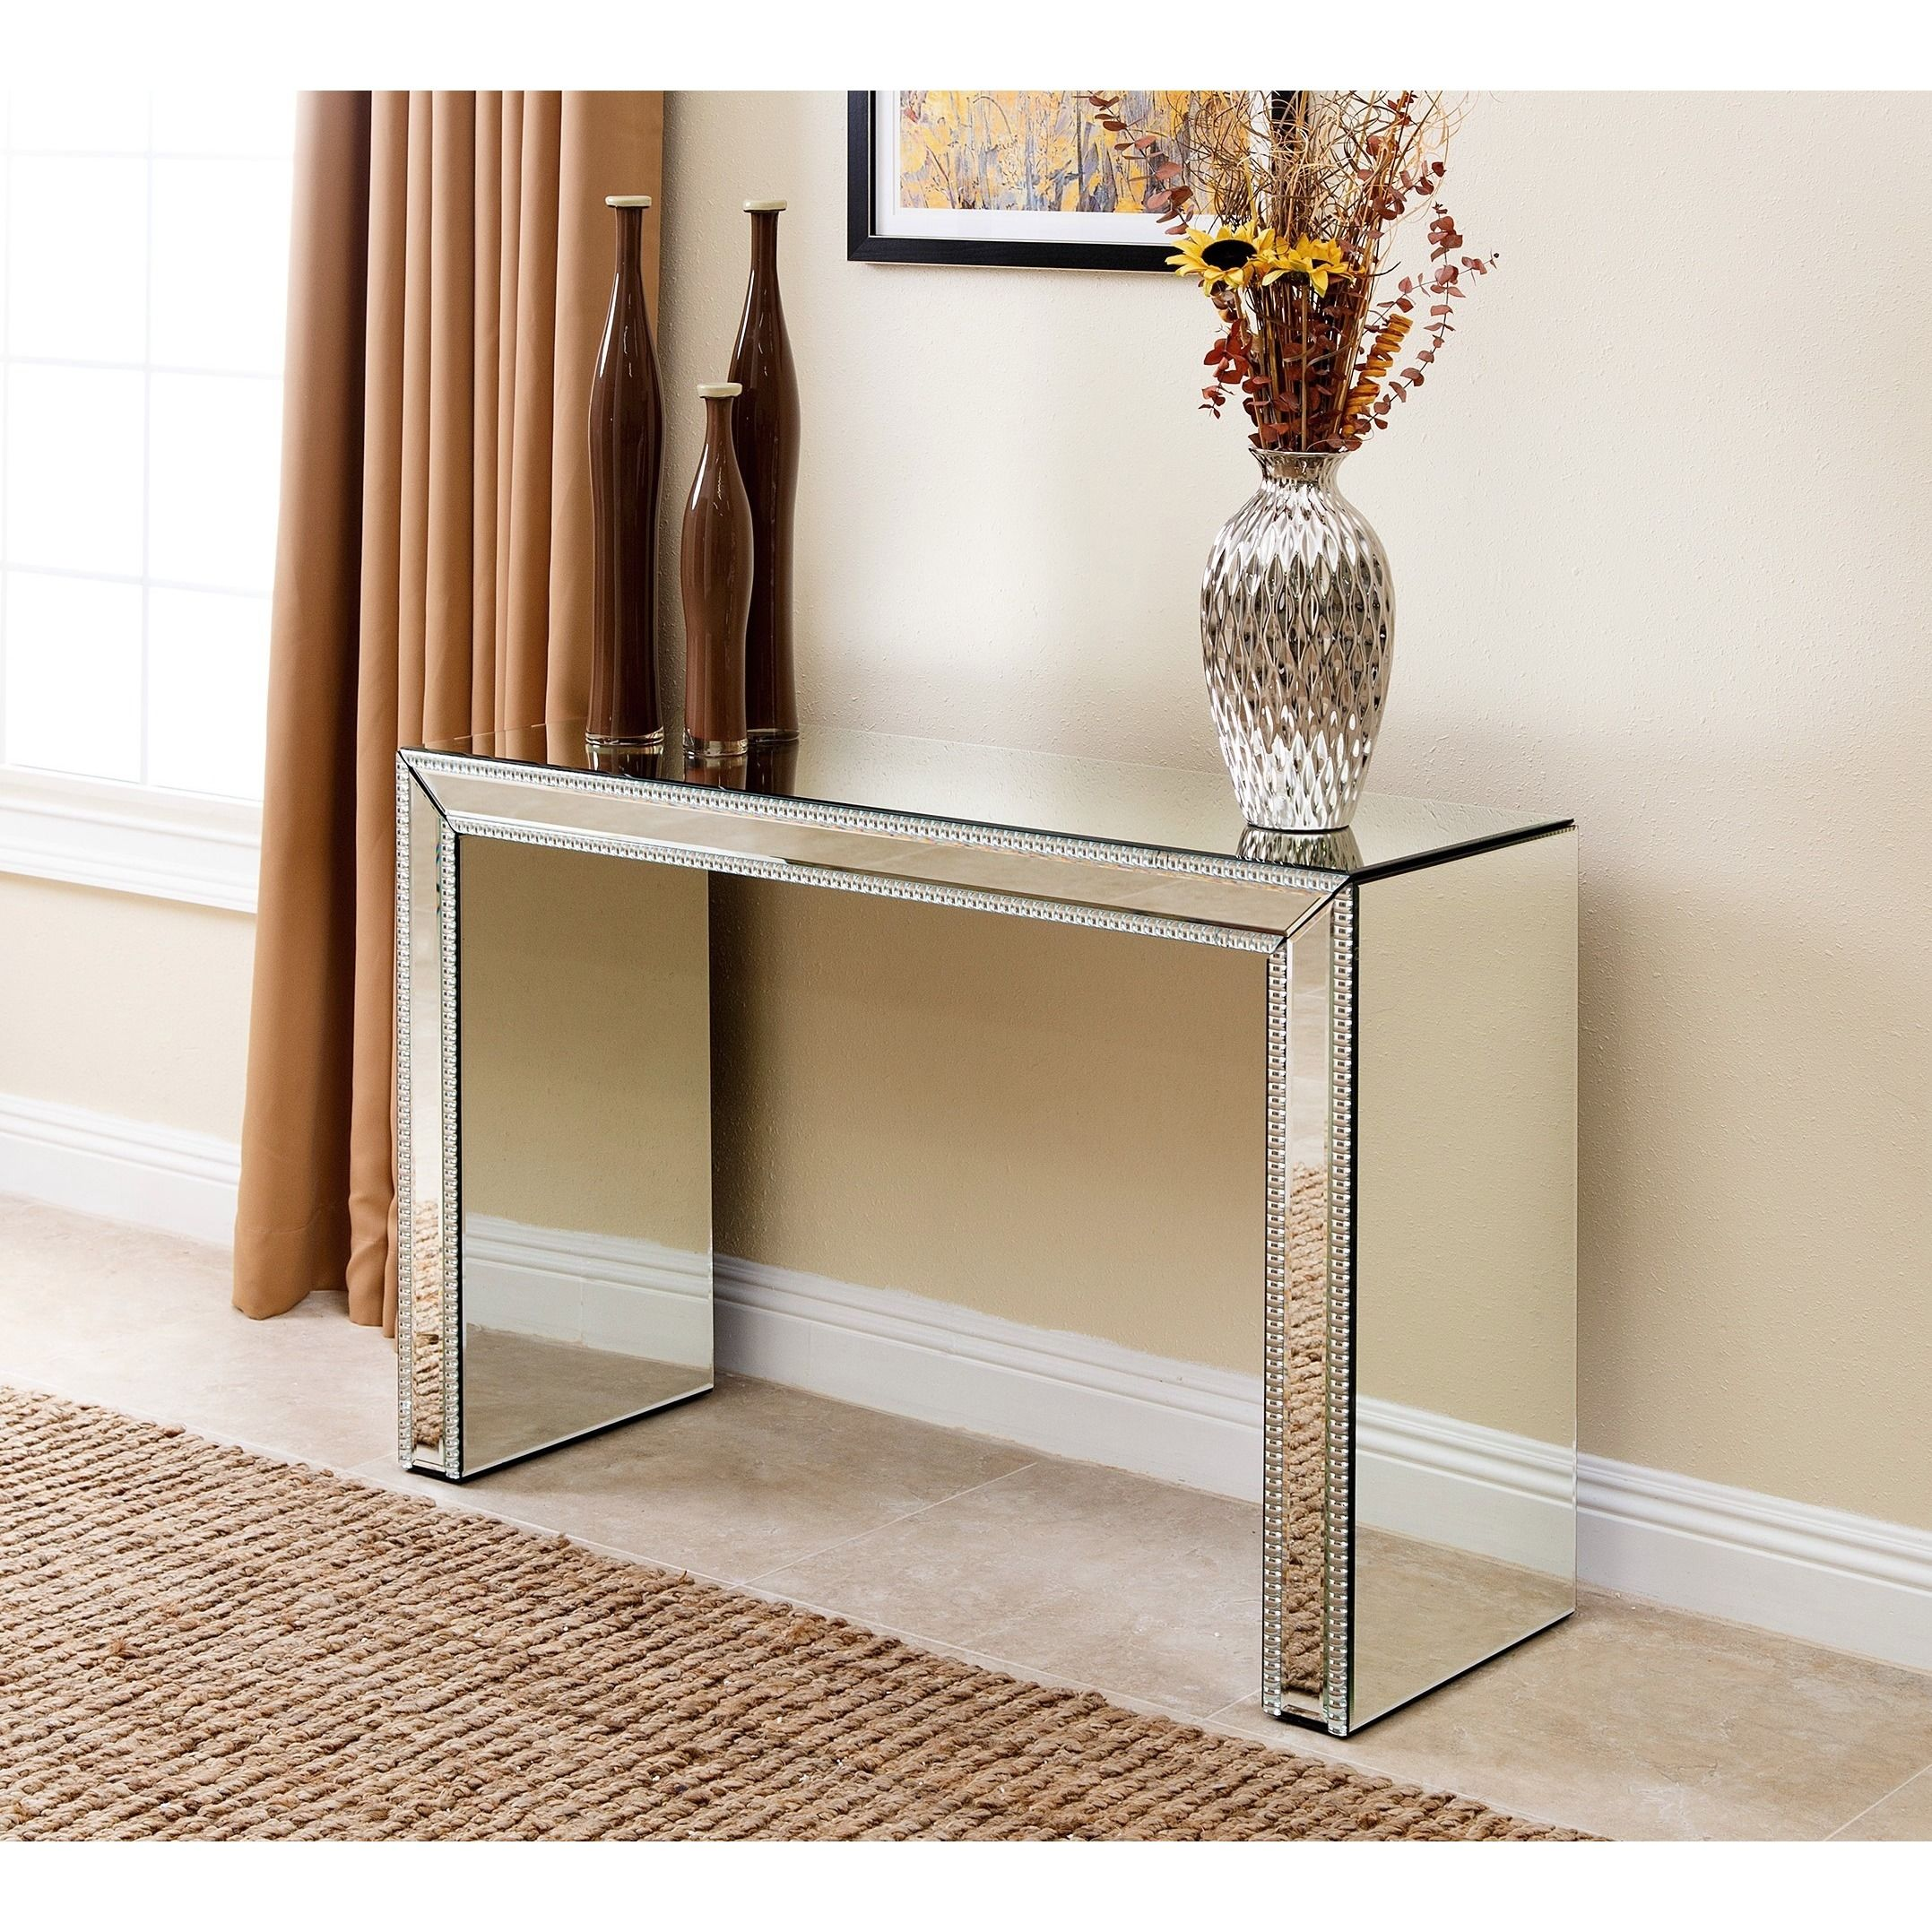 Abbyson living venice studded mirror sofa table overstock abbyson living venice studded mirror sofa table overstock shopping great deals on abbyson living geotapseo Images